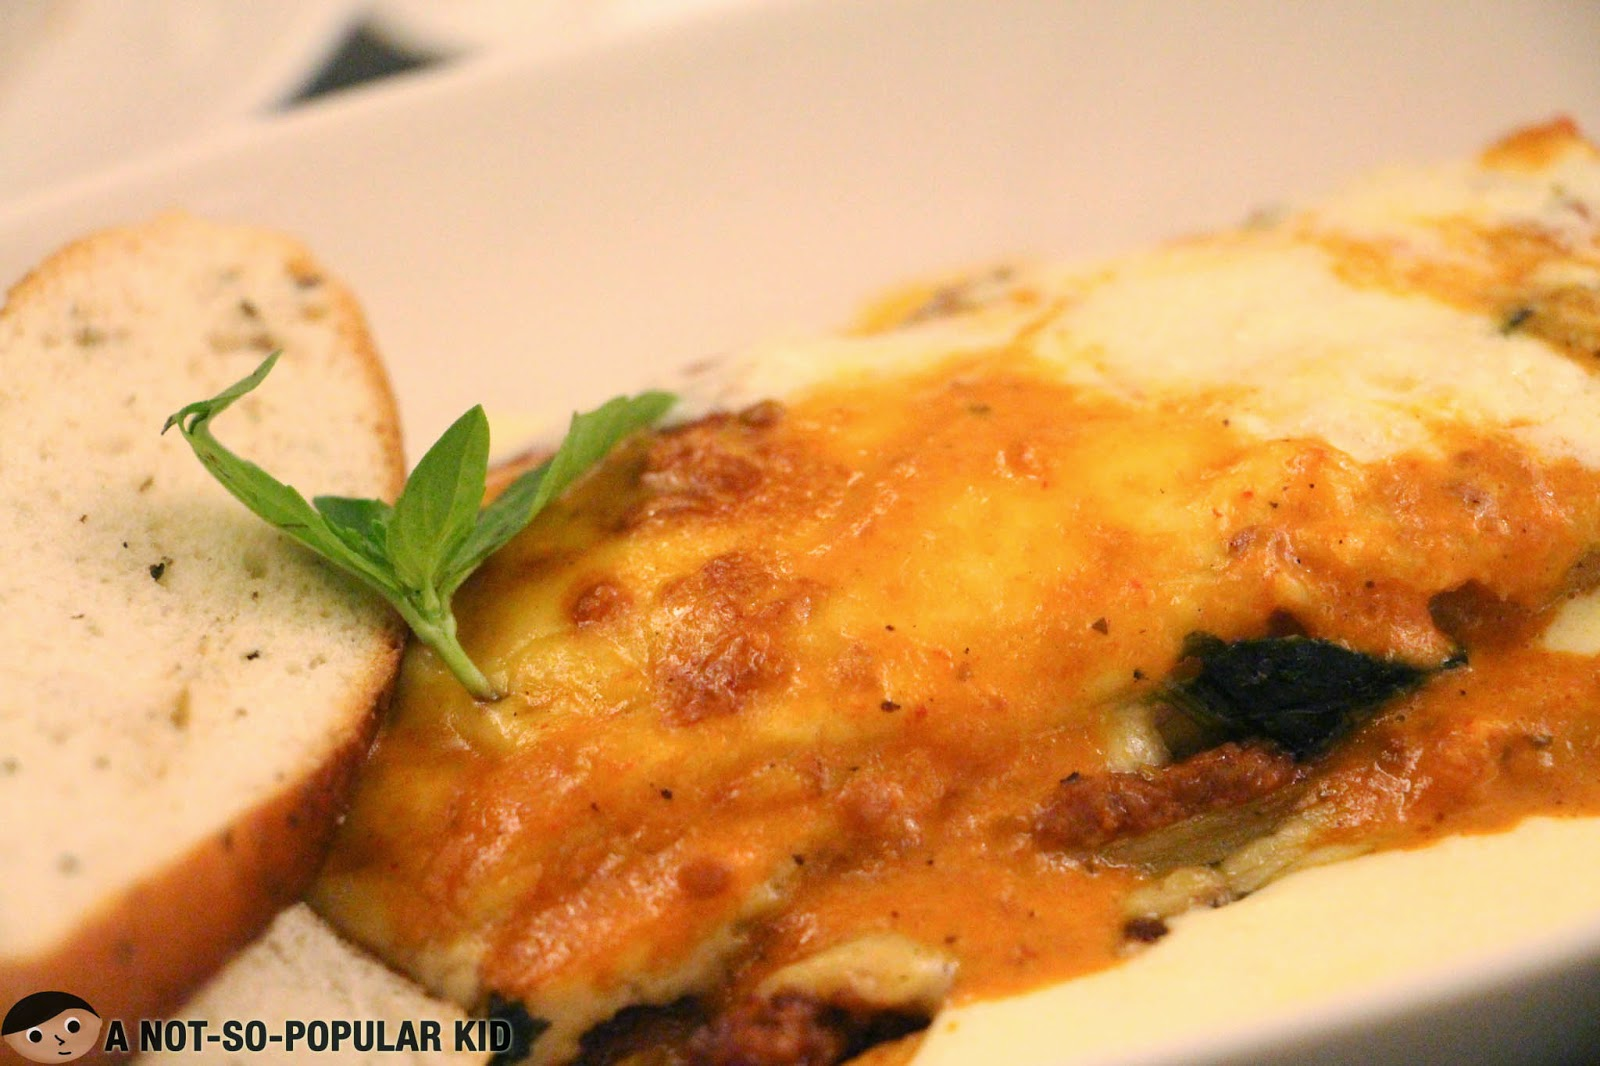 A closer look of the fantastic baked lasagna of the Cafe Astoria